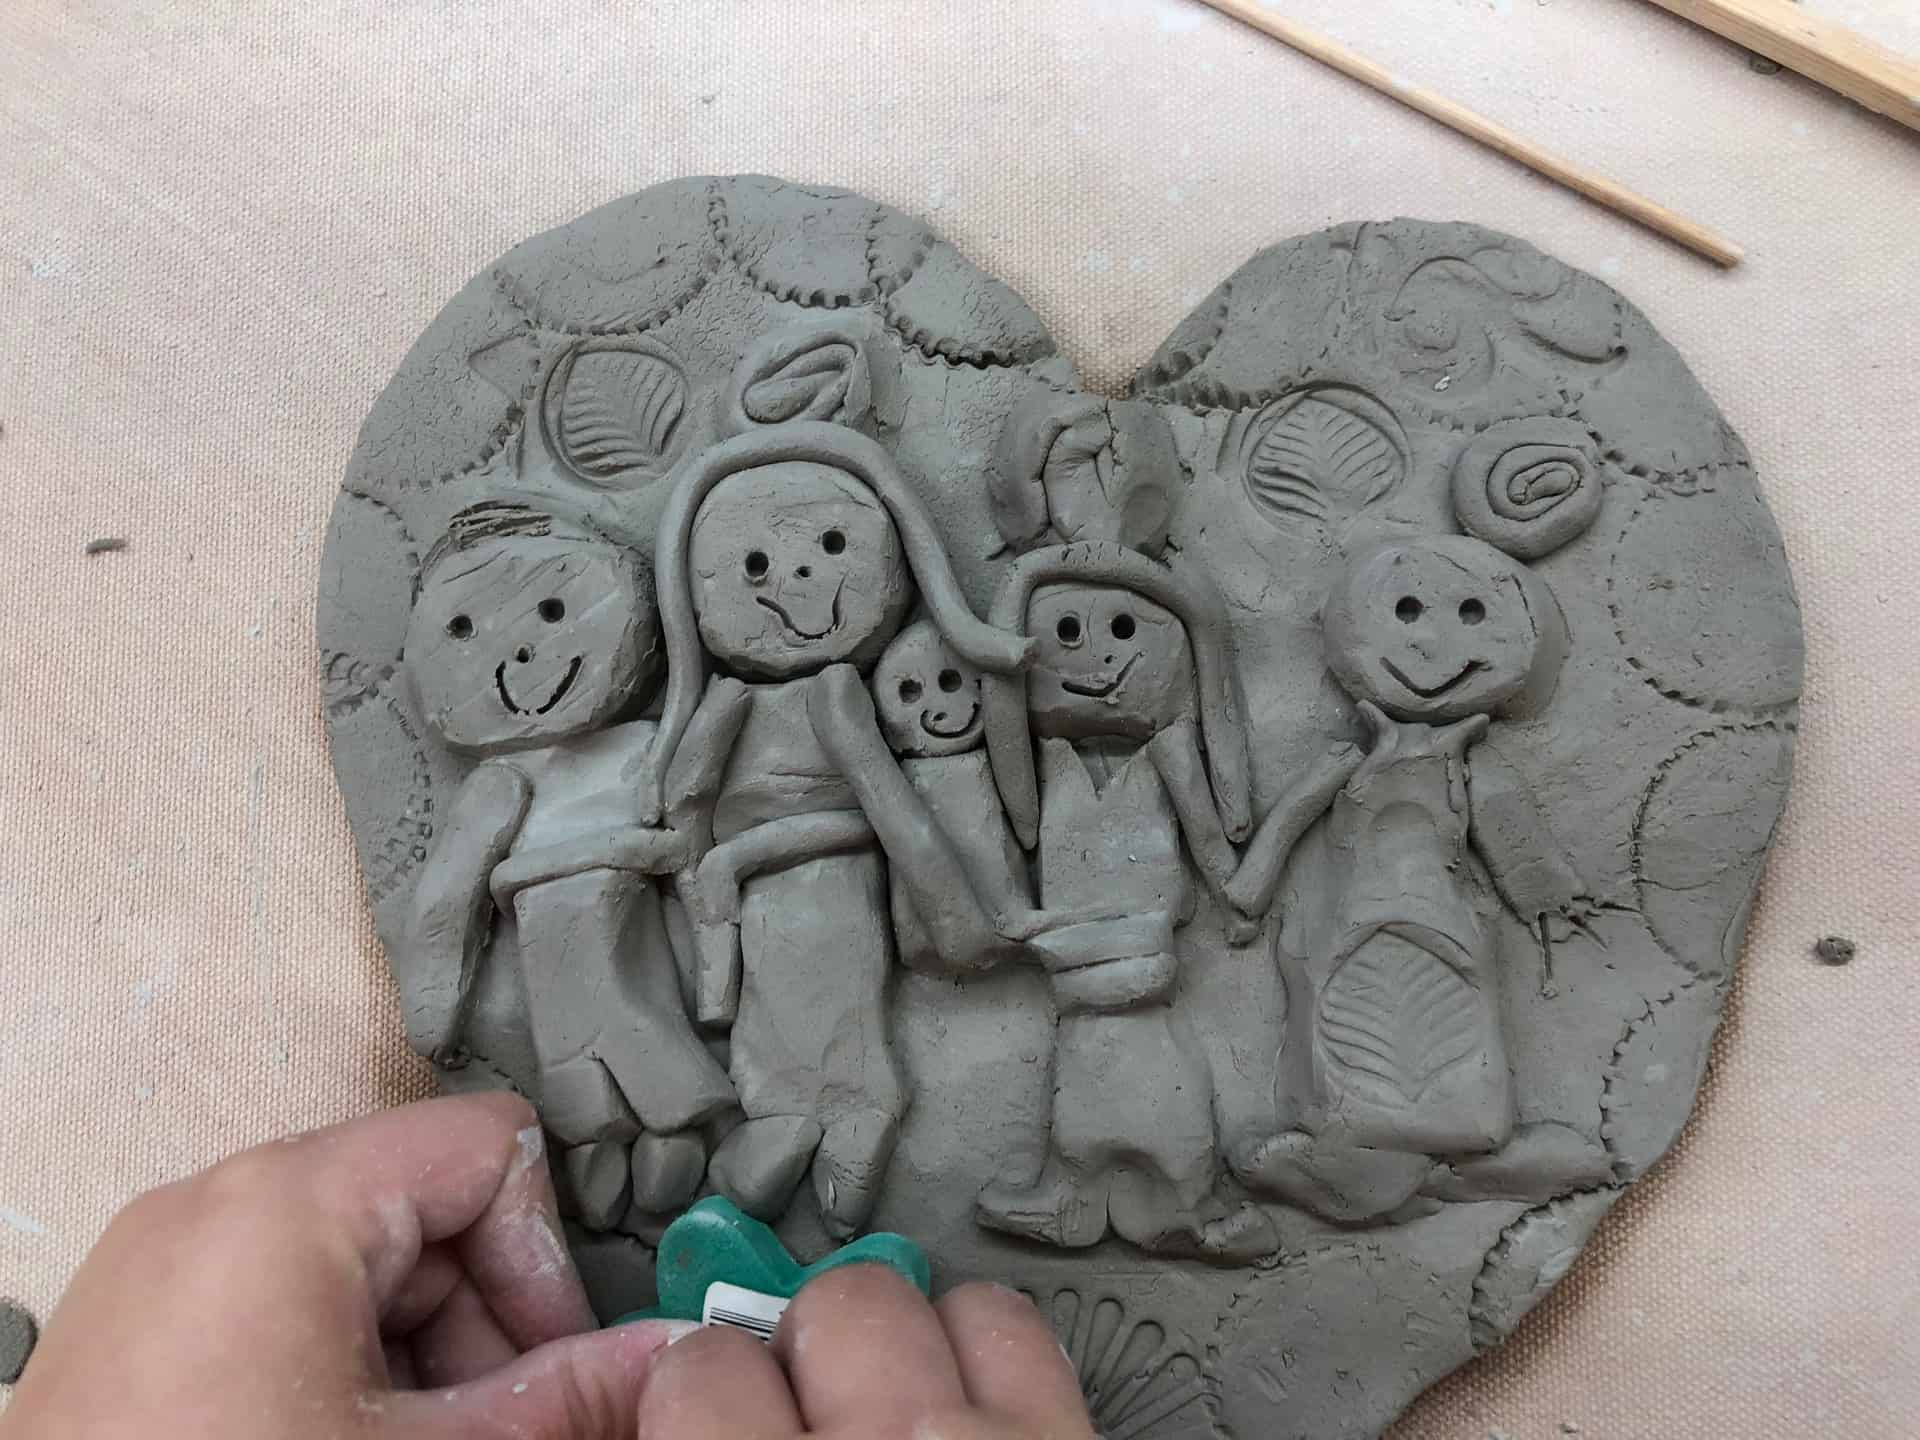 Kids Pottery Classes: Clay with Me Class at the Clay Hut (Smeltzer House)